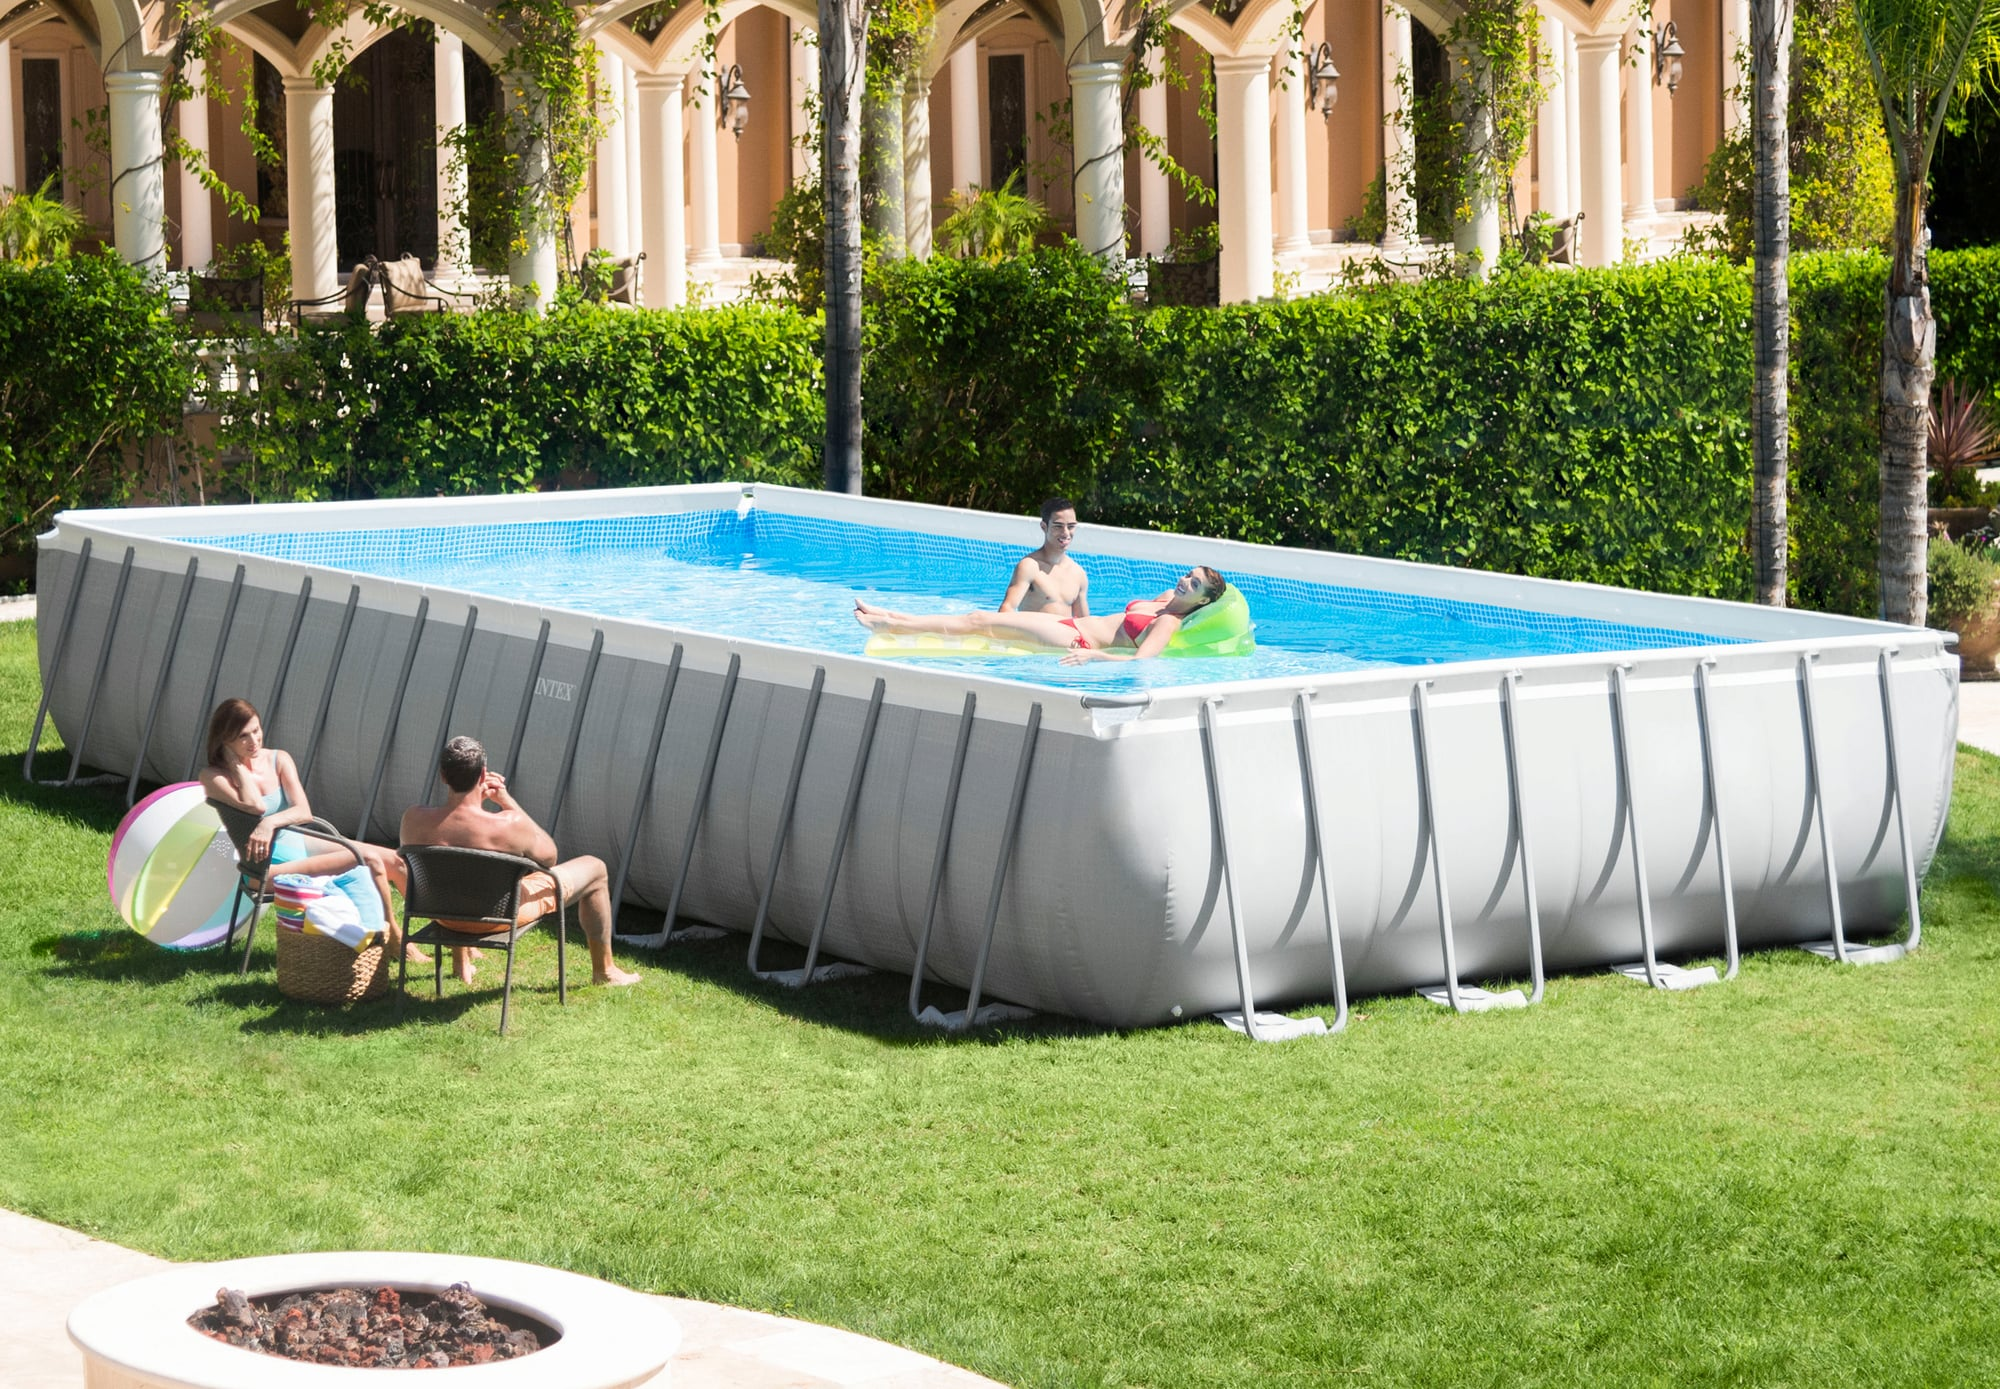 Poolpflege Aldi Intex Frame Pool Ultra Quadra 975 X 488 X 132 Cm 1 Set